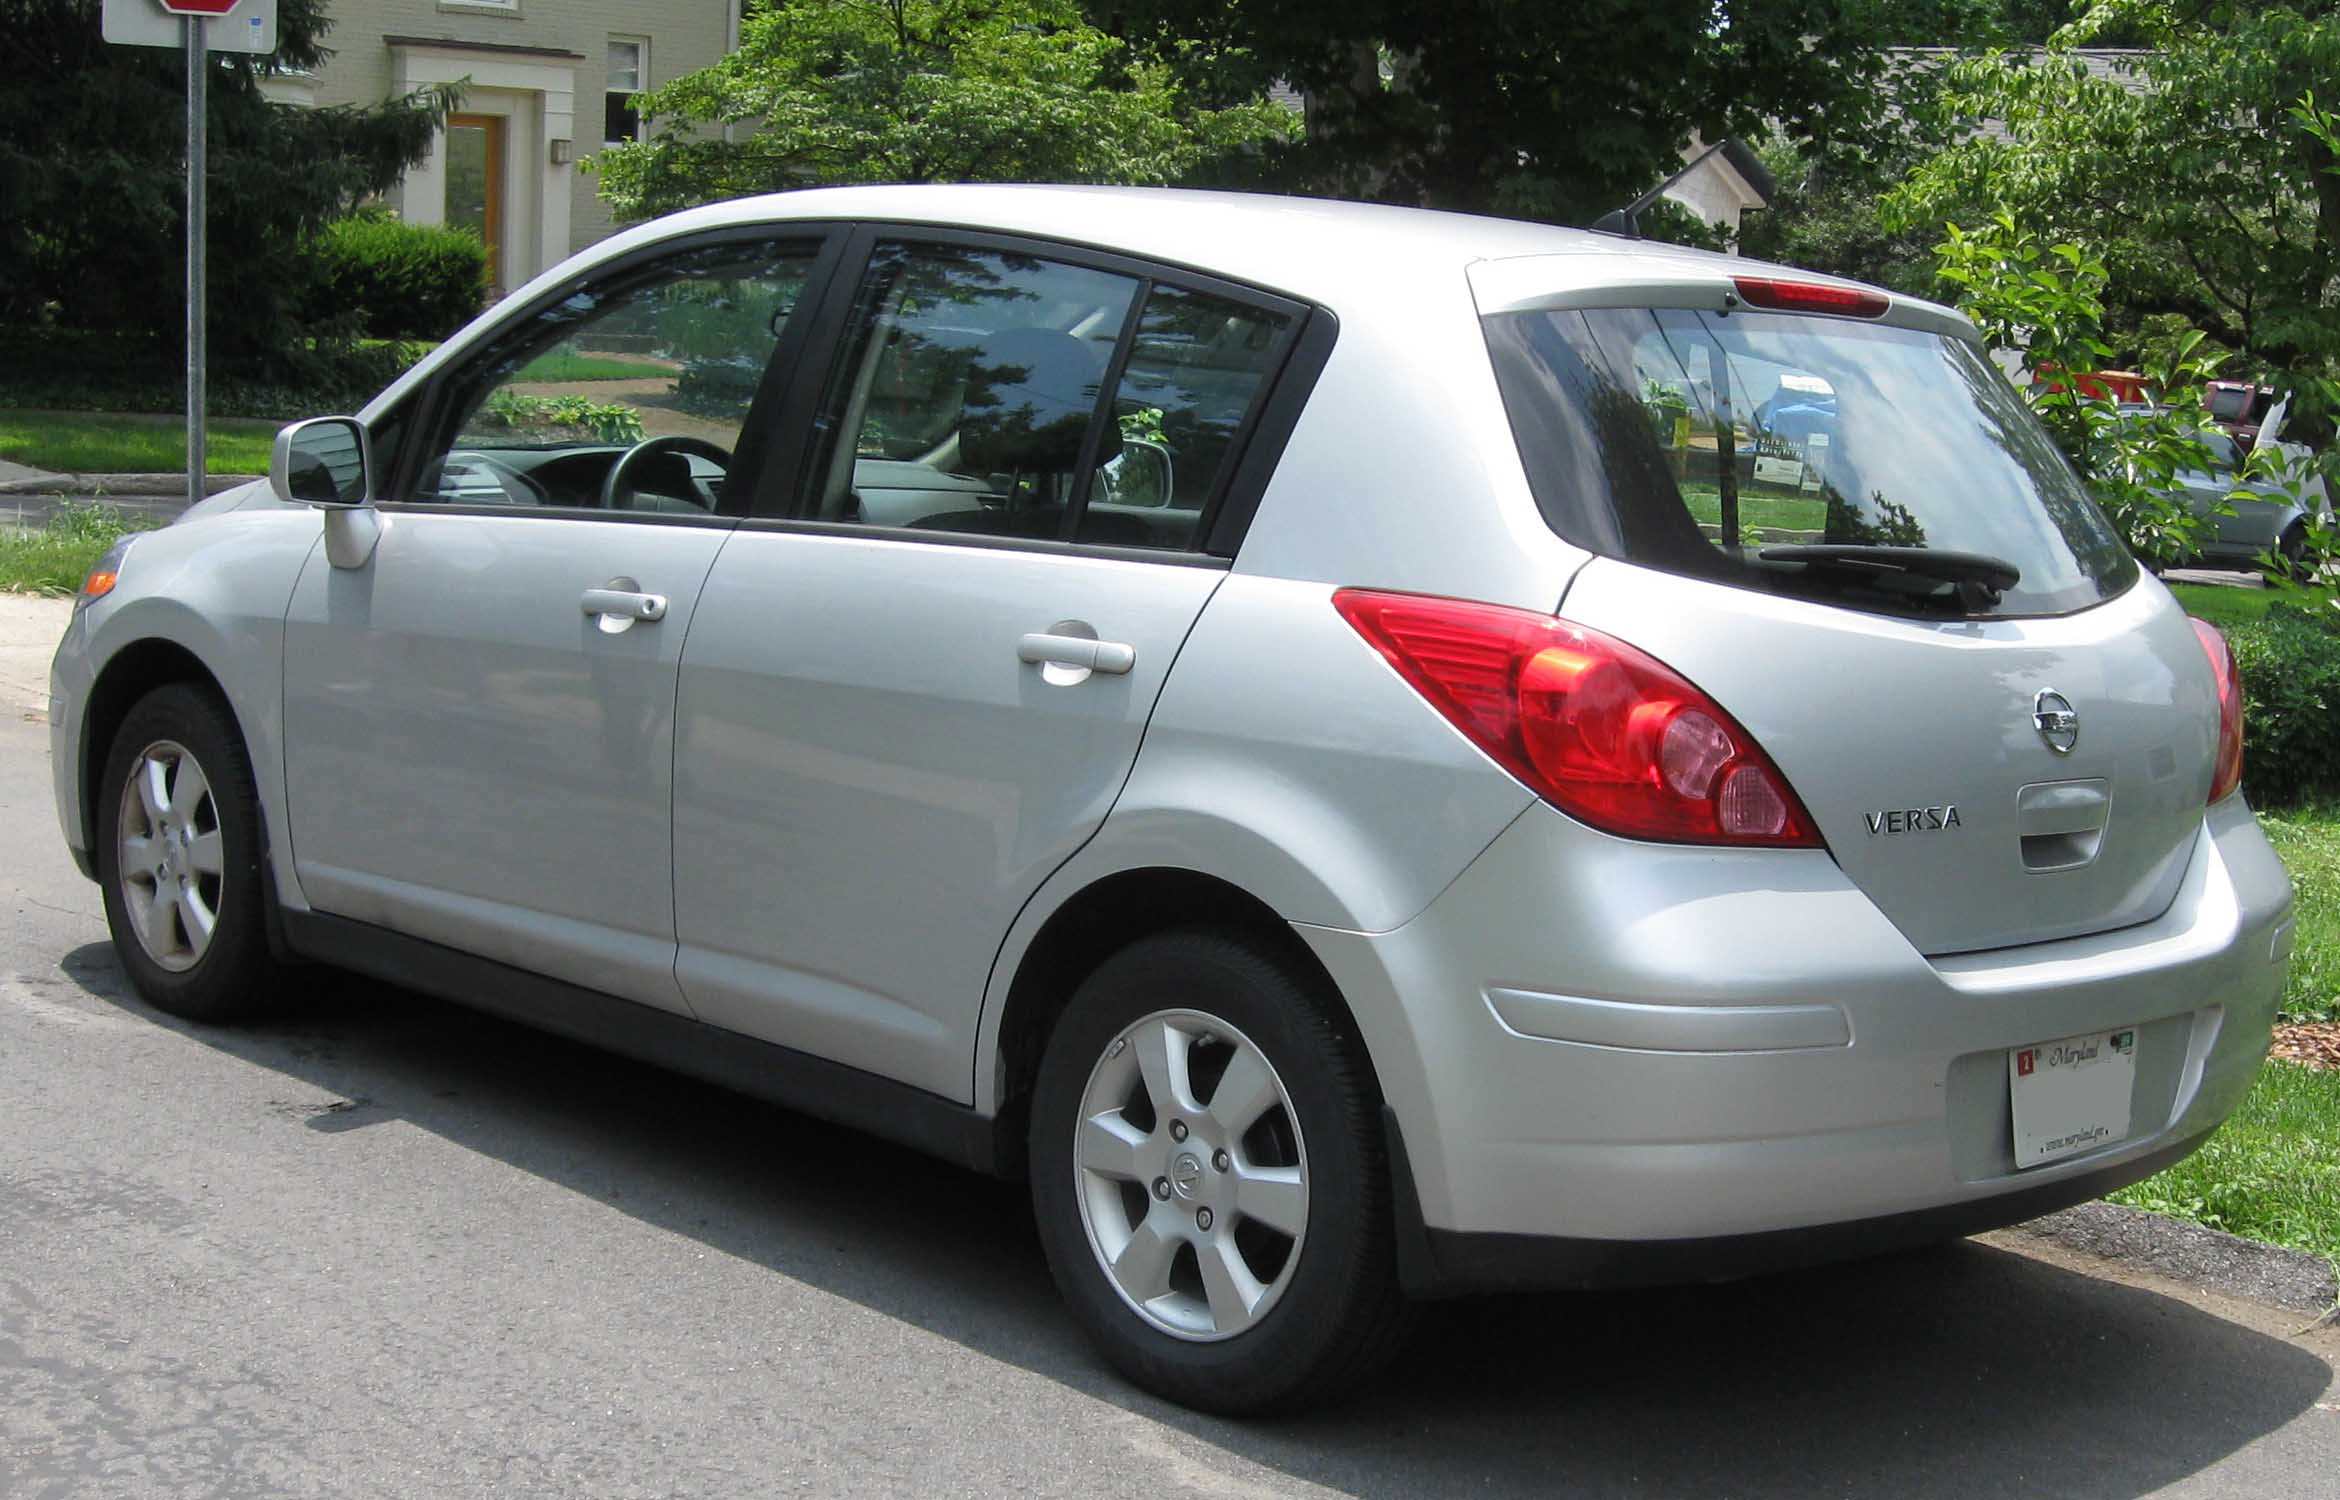 2008 nissan versa 3 nissan versa cars news videos images websites wiki  at bakdesigns.co